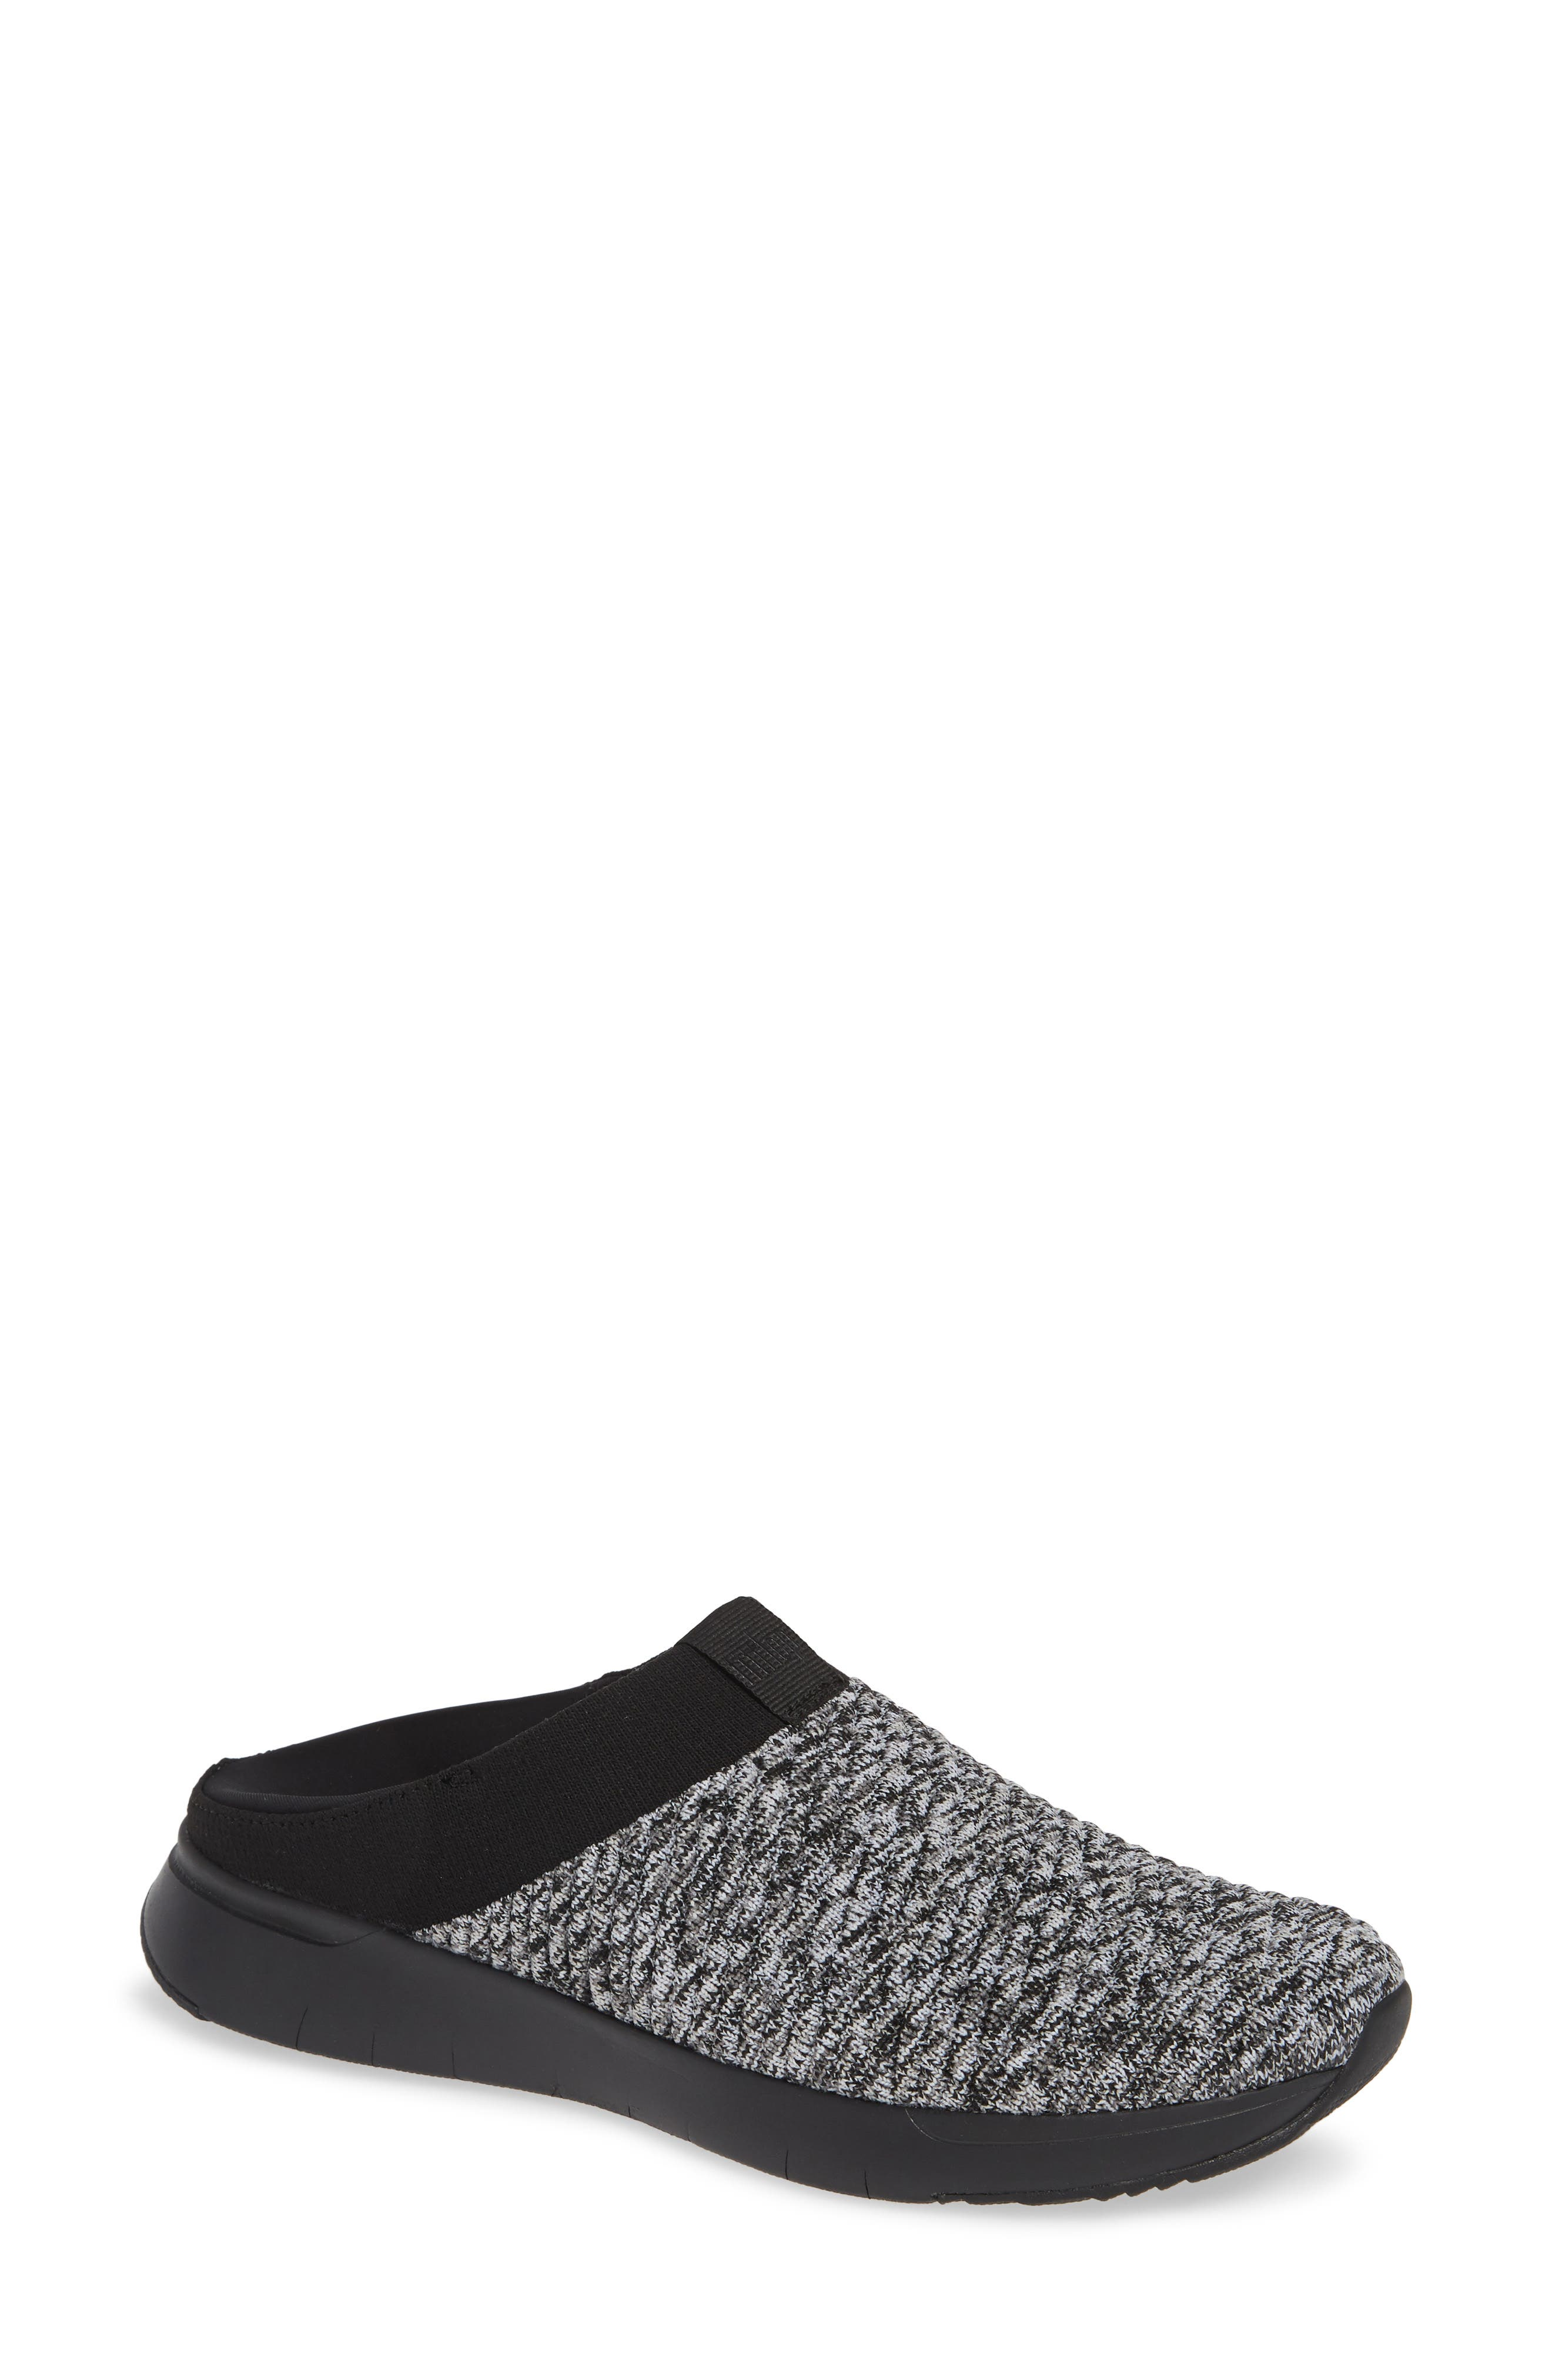 Artknit<sup>™</sup> Convertible Slip-On Sneaker, Main, color, BLACK MIX